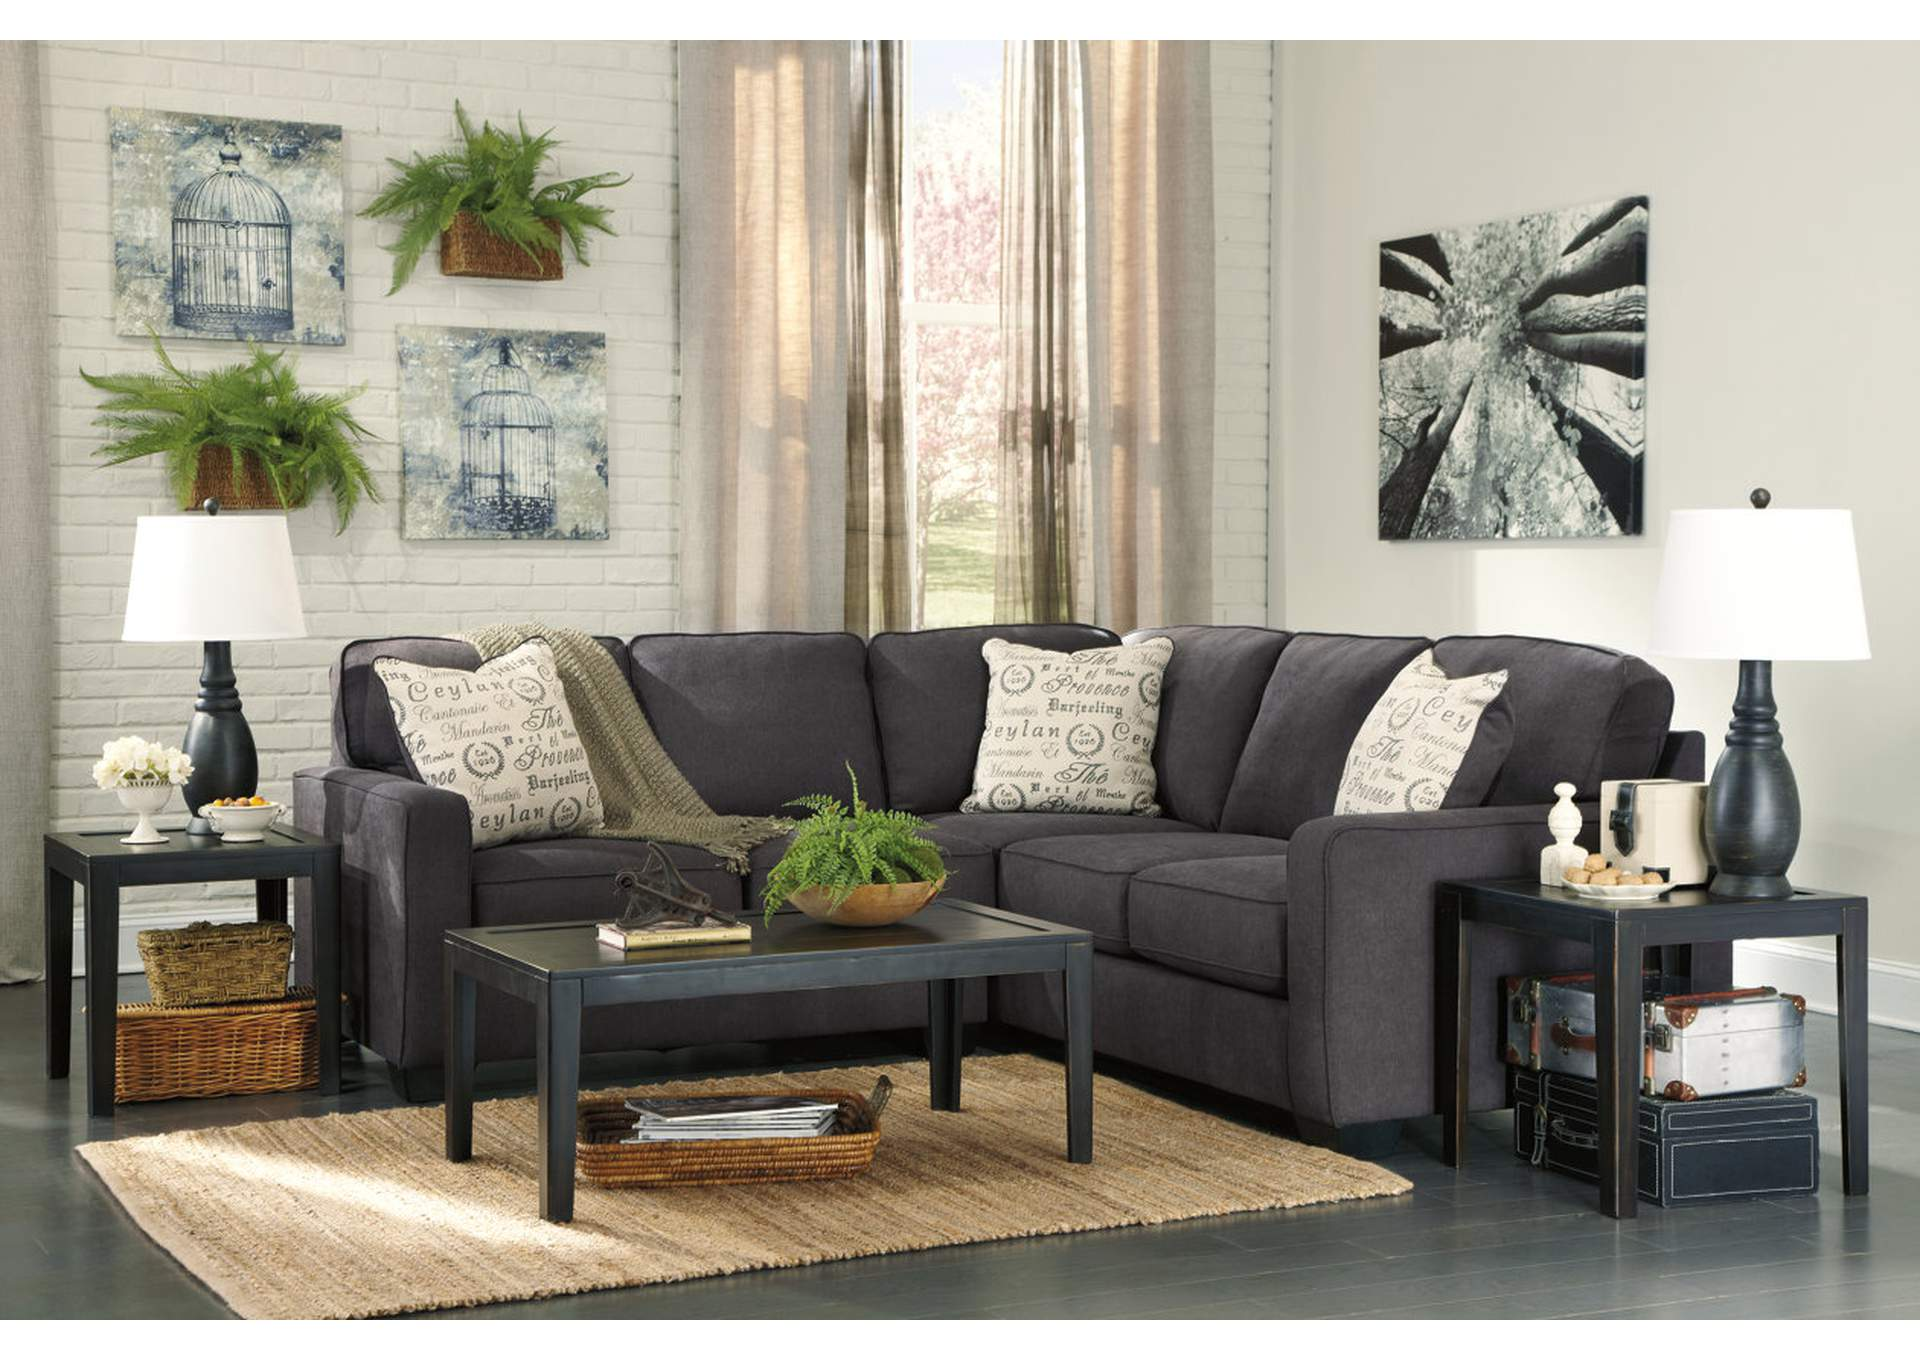 Alenya Charcoal Sectional,ABF Signature Design by Ashley